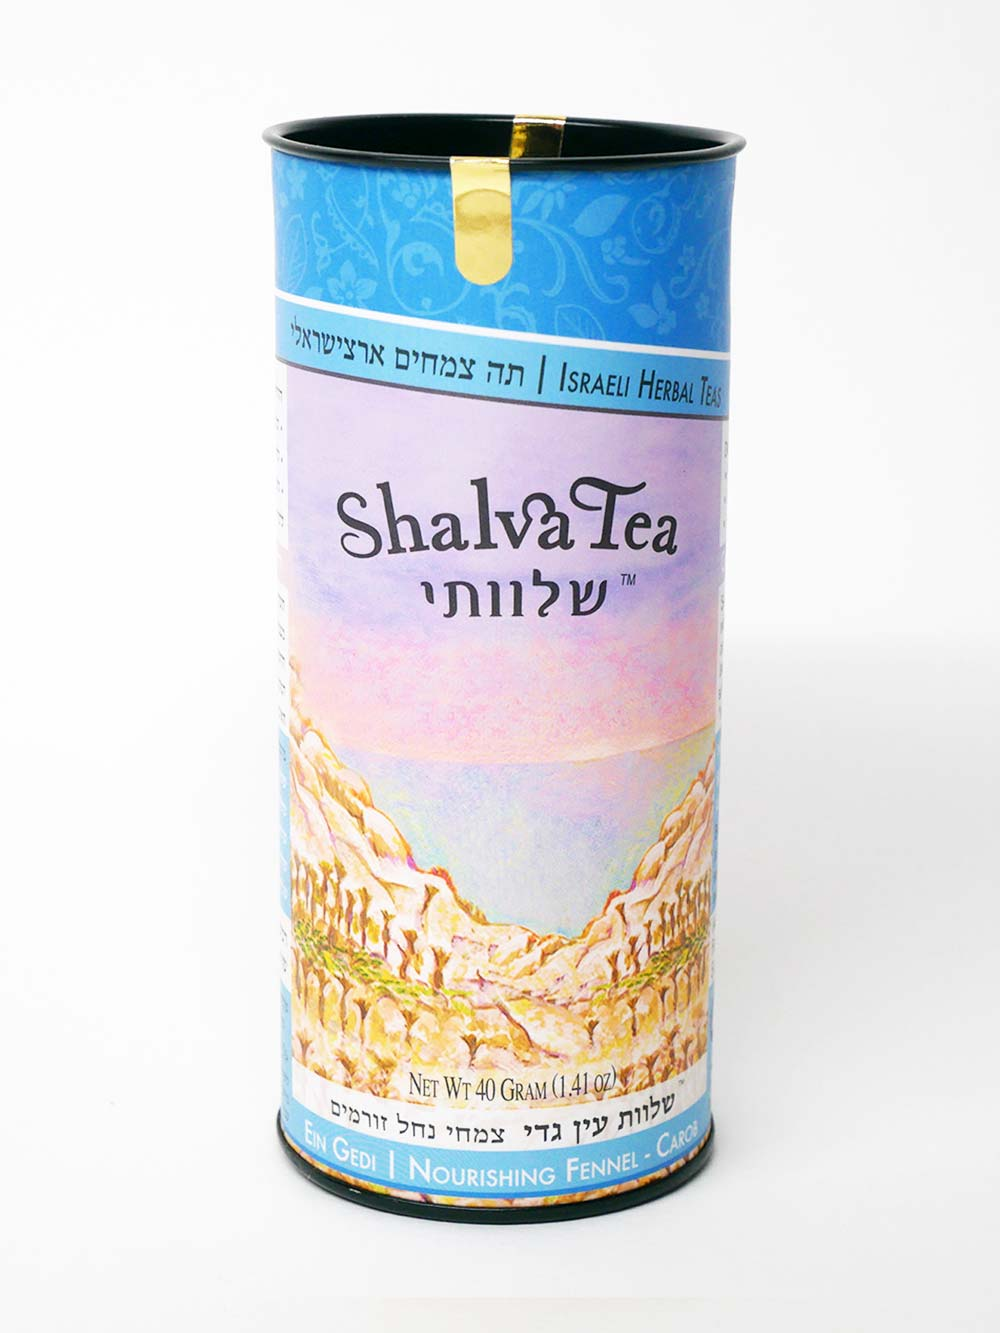 Nourishing Fennel Seed-Carob | Ein Gedi Blend (20 Teabags) - ShalvaTea Kosher Israeli Herbal Teas